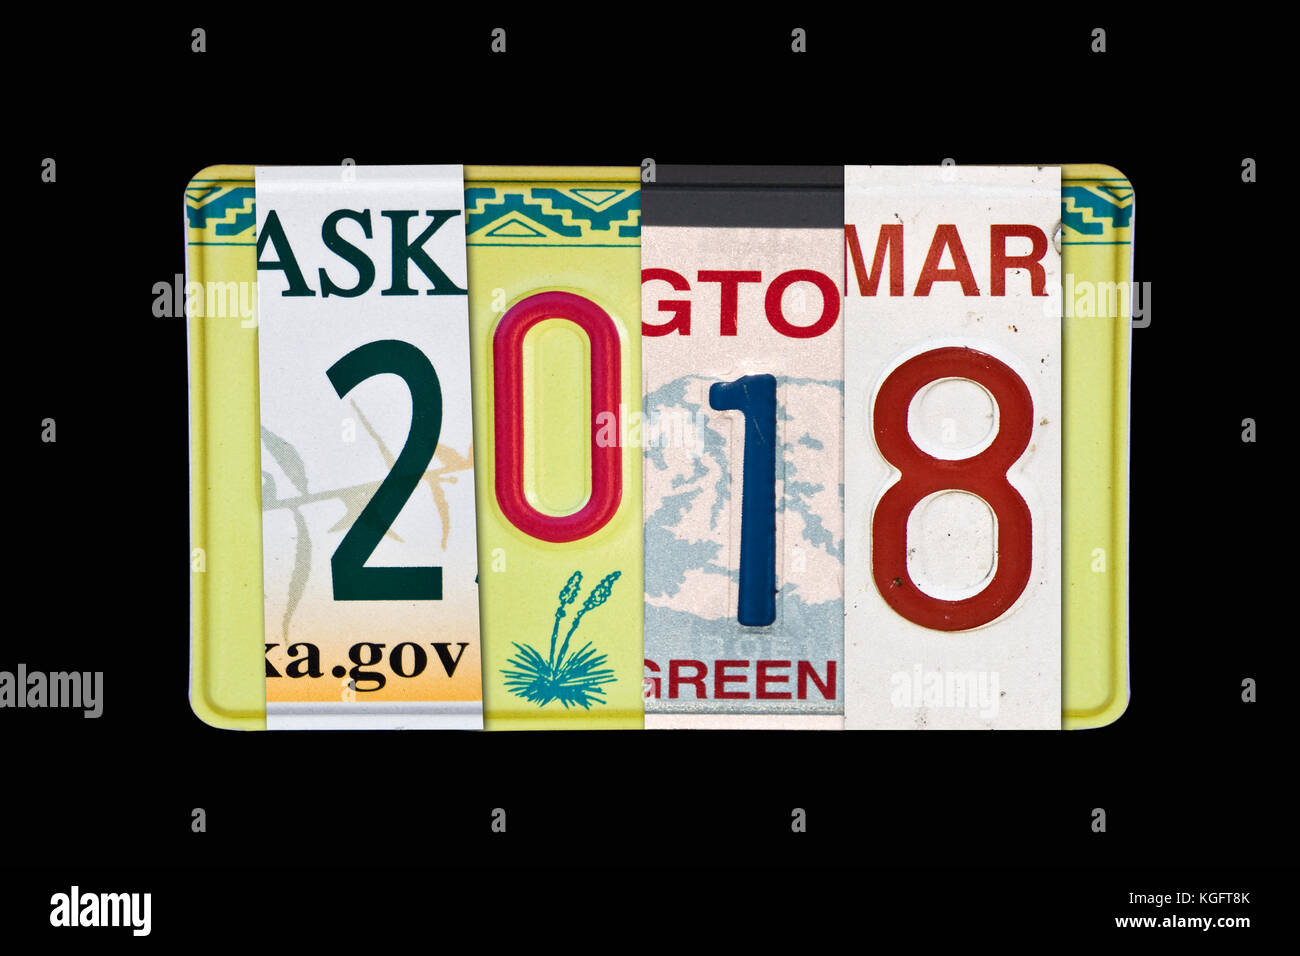 Card Licence Stock Photos & Card Licence Stock Images - Alamy